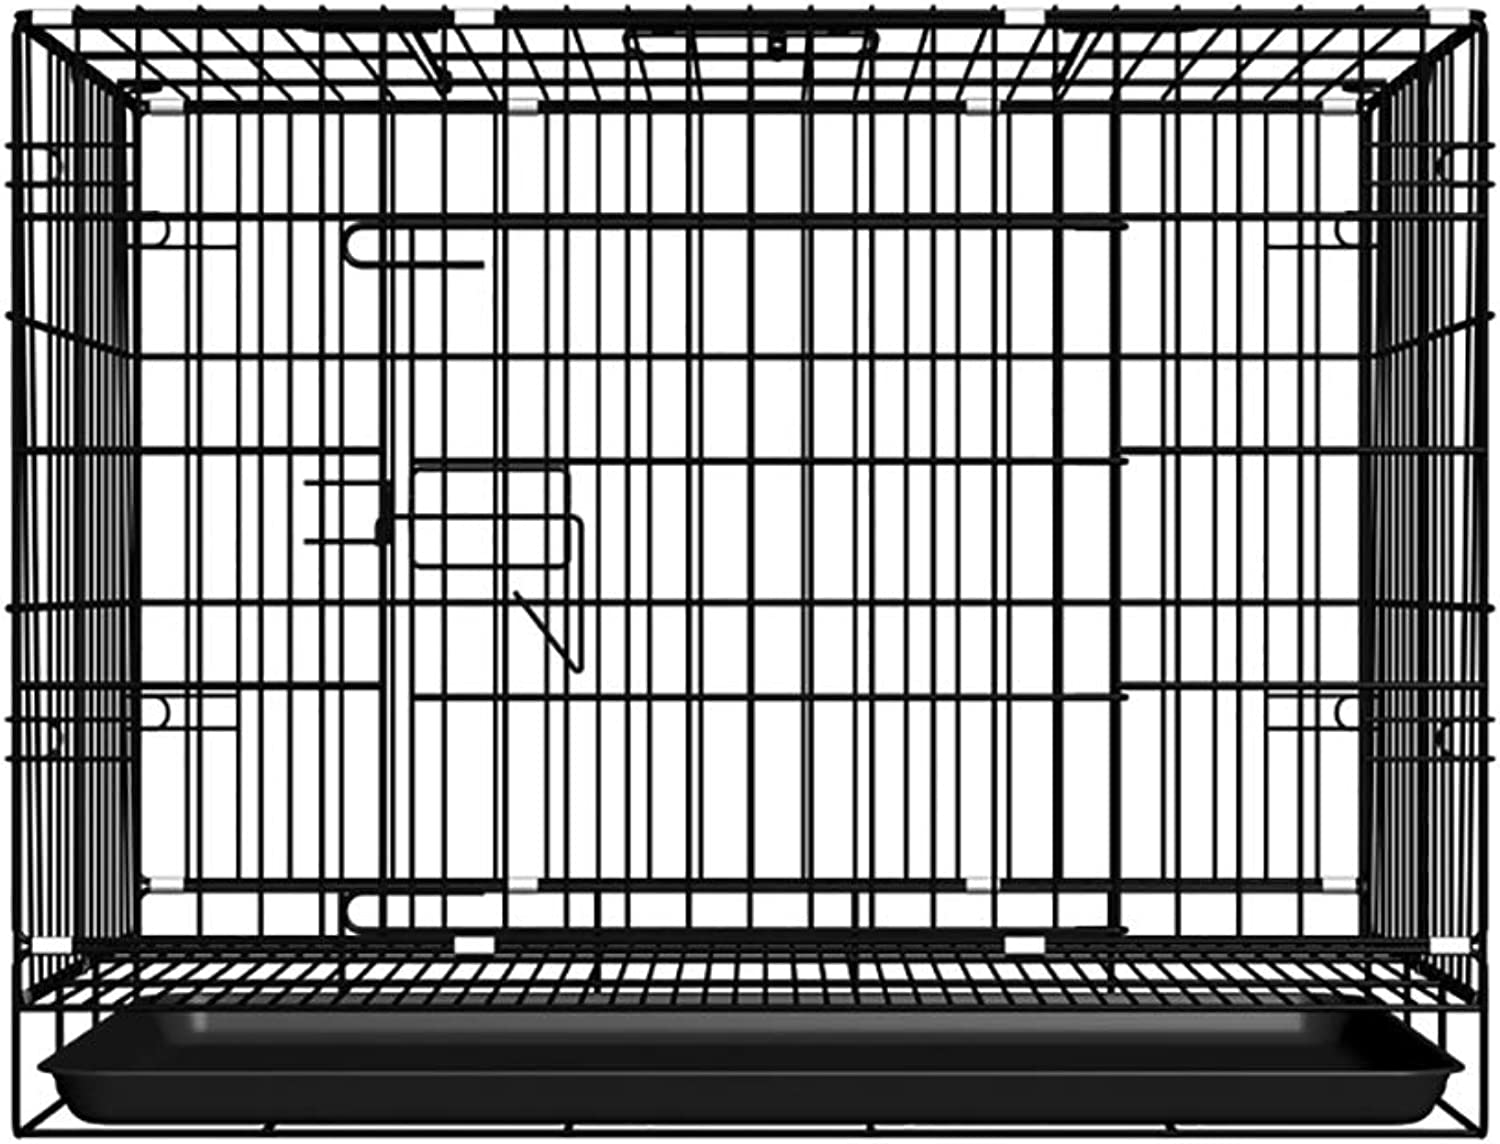 QNMM Folding Metal Dog Crate Puppy Transport Crate Pet Carrier Suitable for Small and Medium Pet Dogs to Rest,Black,L